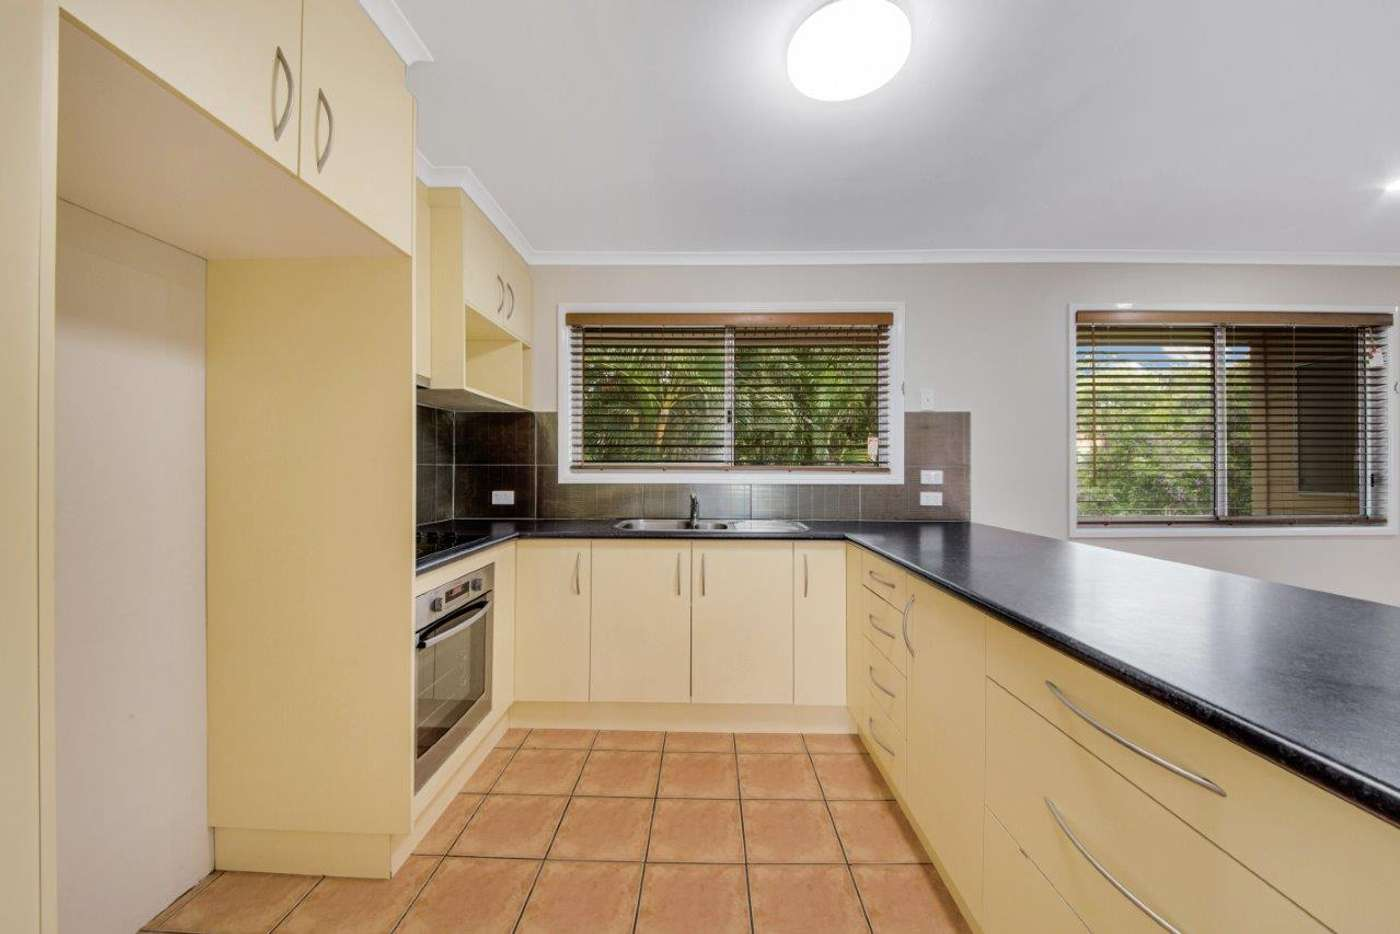 Seventh view of Homely house listing, 53 Langdon Street, Tannum Sands QLD 4680